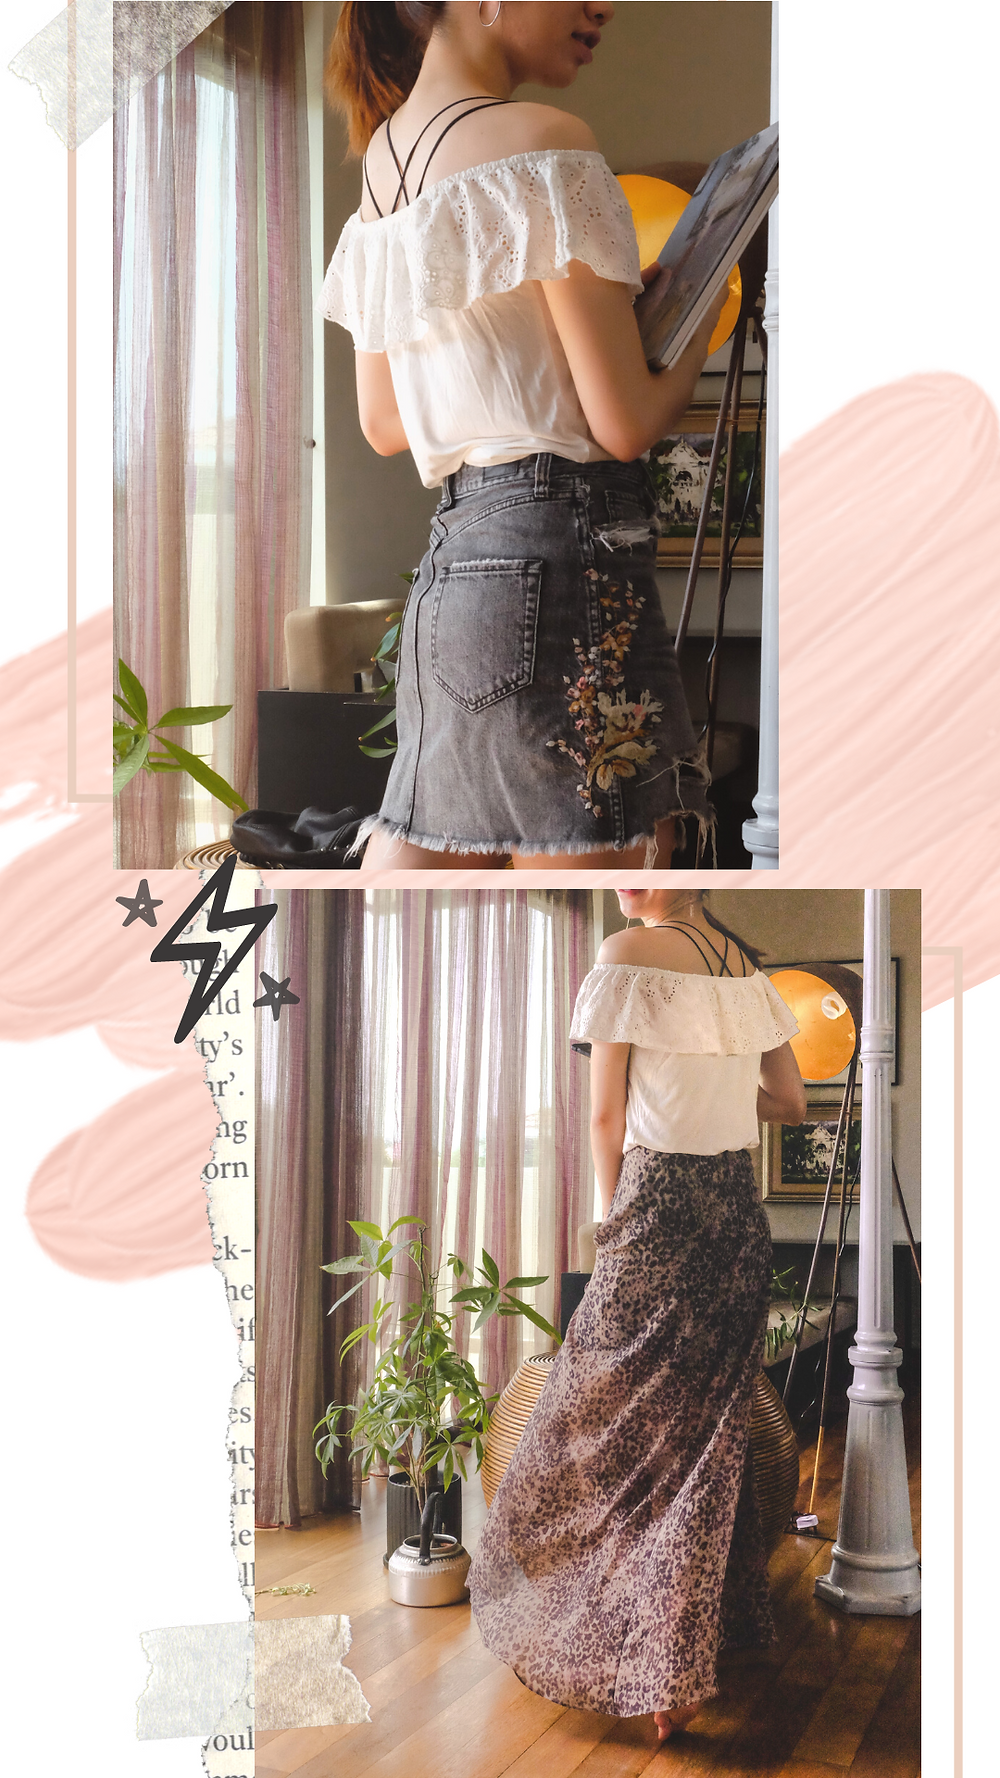 Fashion collage styling Miss Selfridge lace top, denim skirt, and AllSaints leopard print skirt, RollingBear Travels blog.